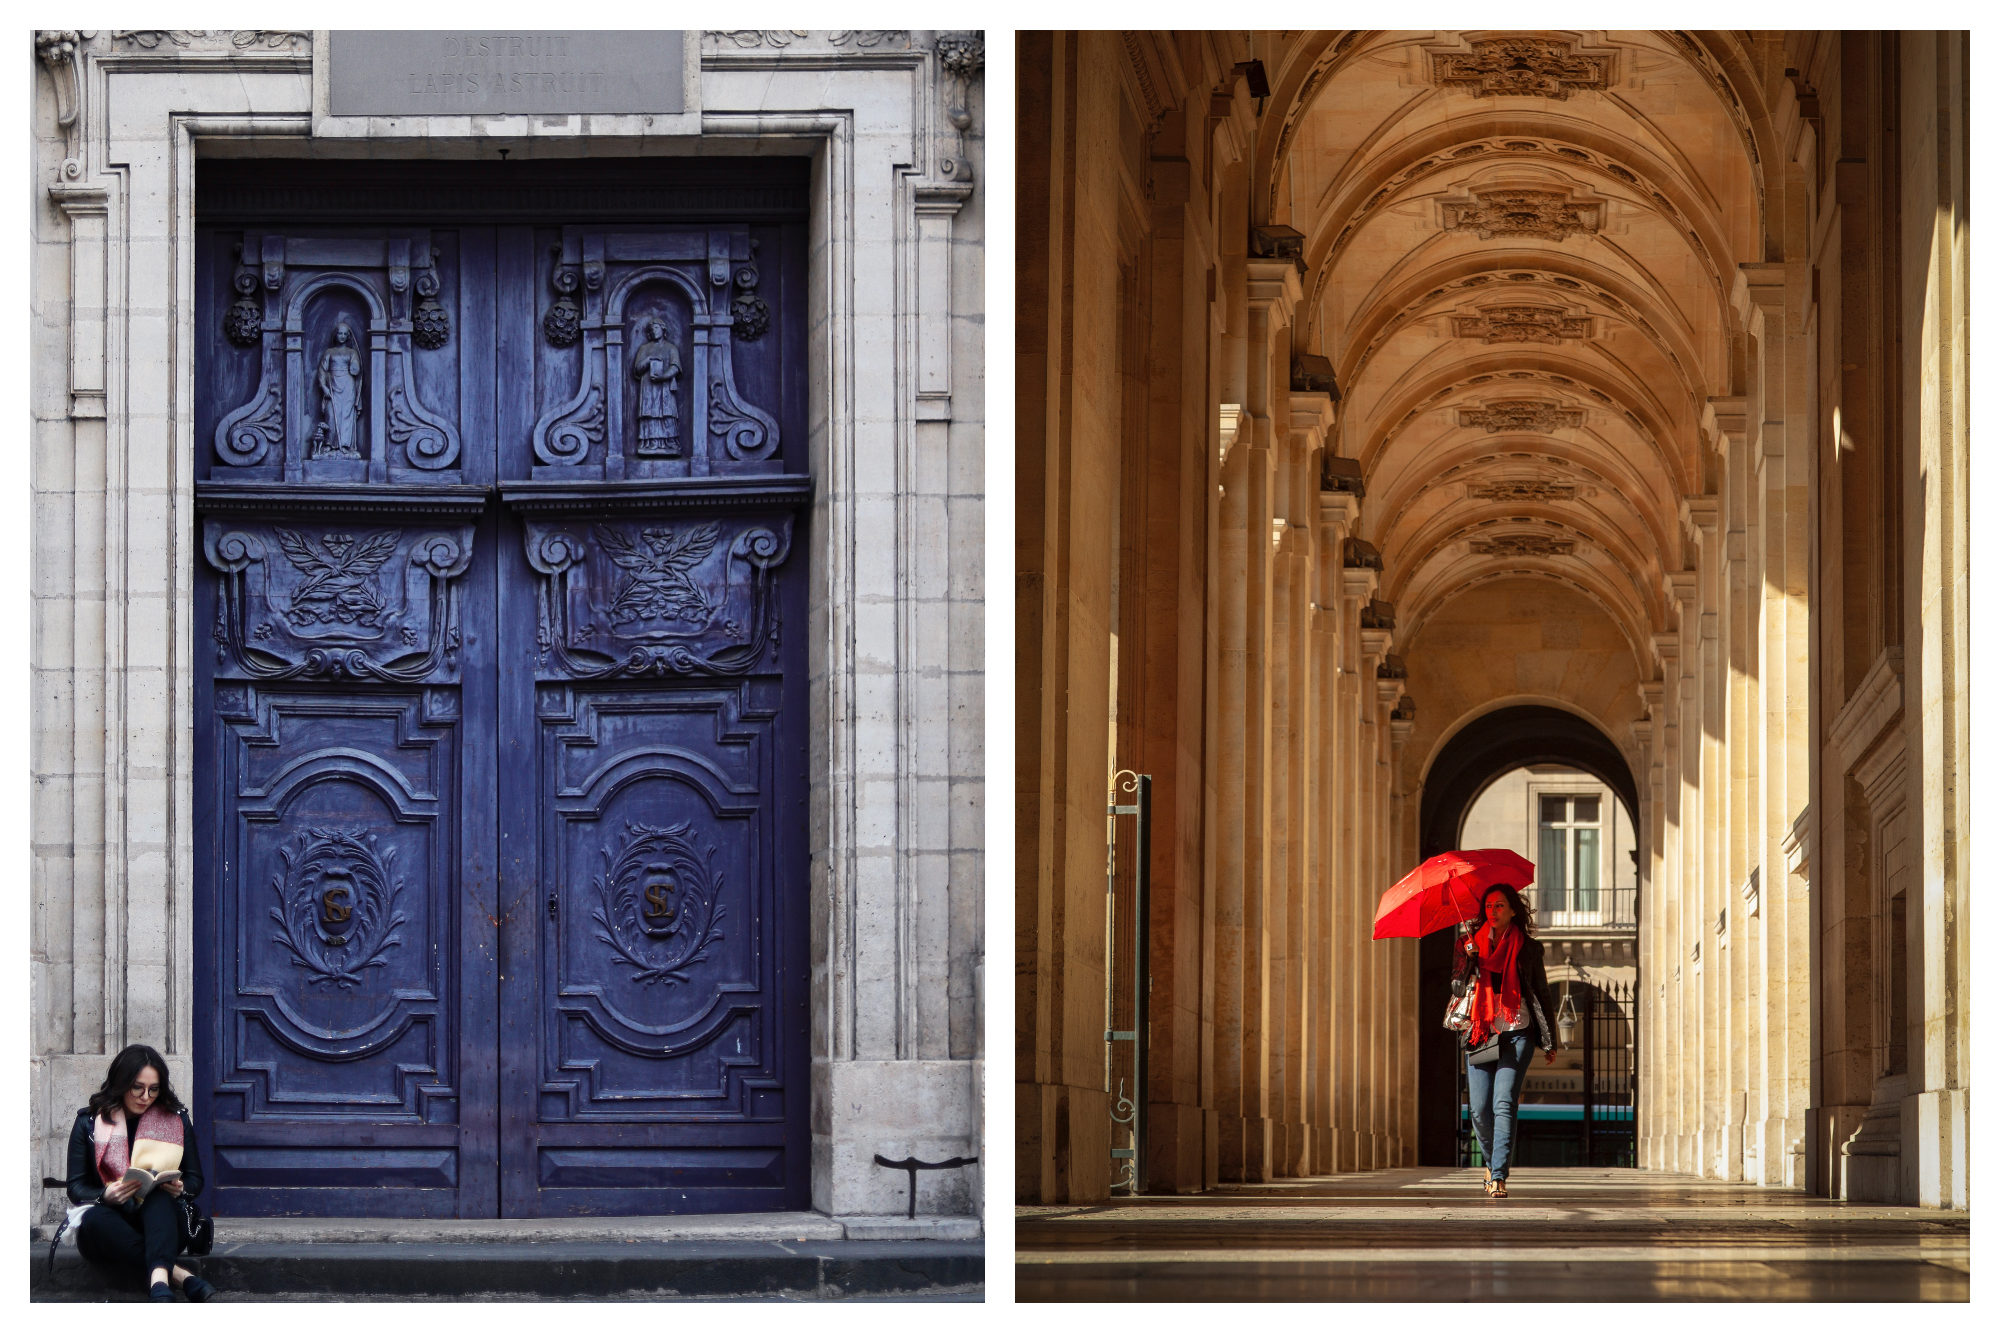 A beautifully carved wooden blue door with a woman sitting on the step reading (left). The arches surrounding the Jardin du Palais Royal with sunshine filtering through and a woman walks holding up a red umbrella (right).